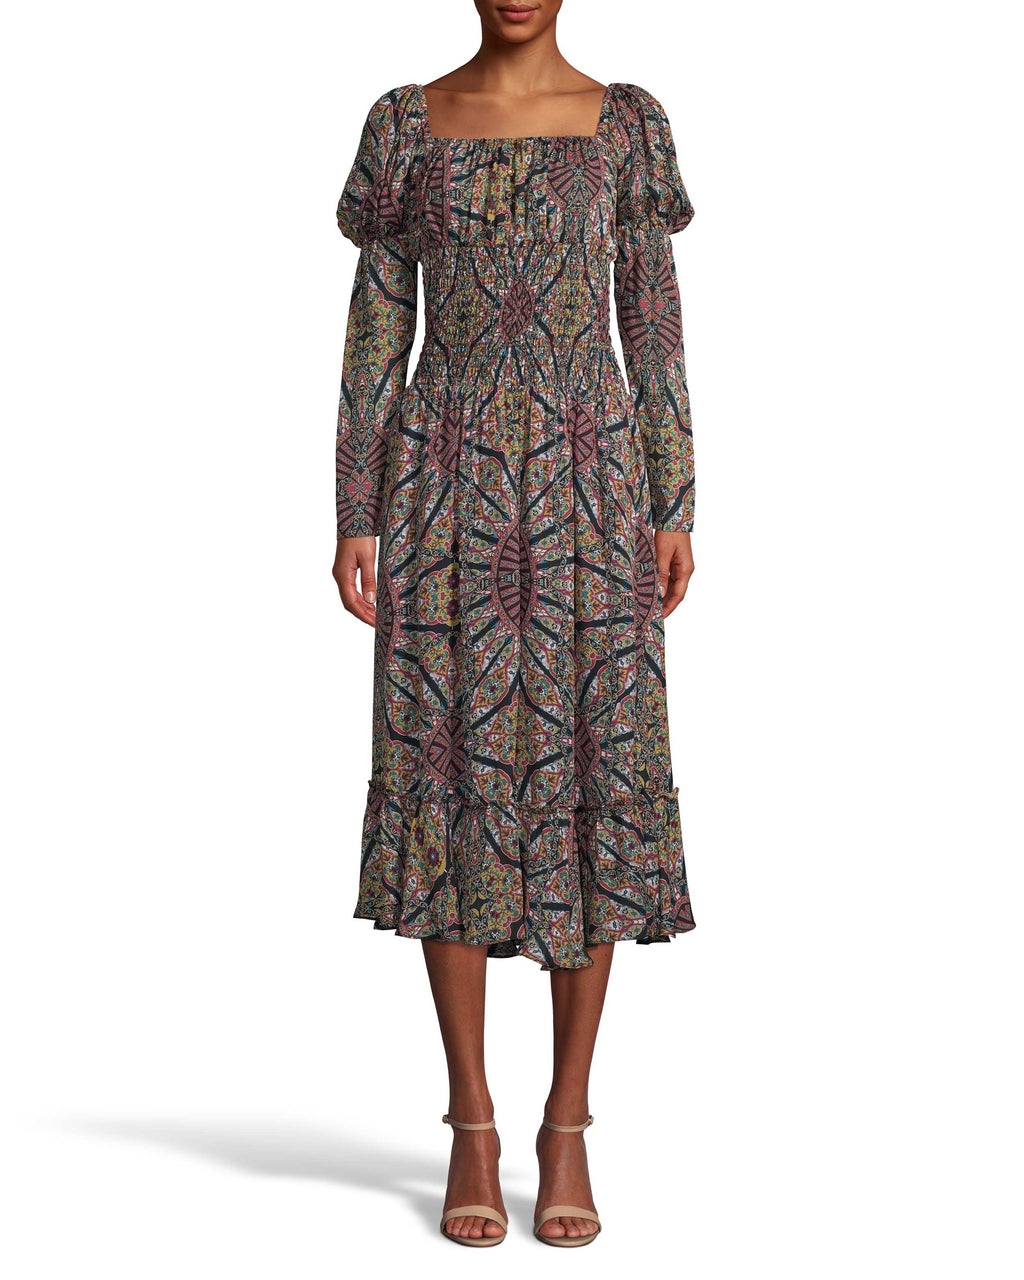 CD18184 - LABYRINTH SILK SMOCKED WAIST DRESS - dresses - long - Pull on this easygoing style for an effortless fall ensemble. Featuring a square neckline with puff sleeves, a smocked waistline and crystal front buttons. Add 1 line break Stylist tip: Style with chunky black boots like on our Fall 2020 Runway.